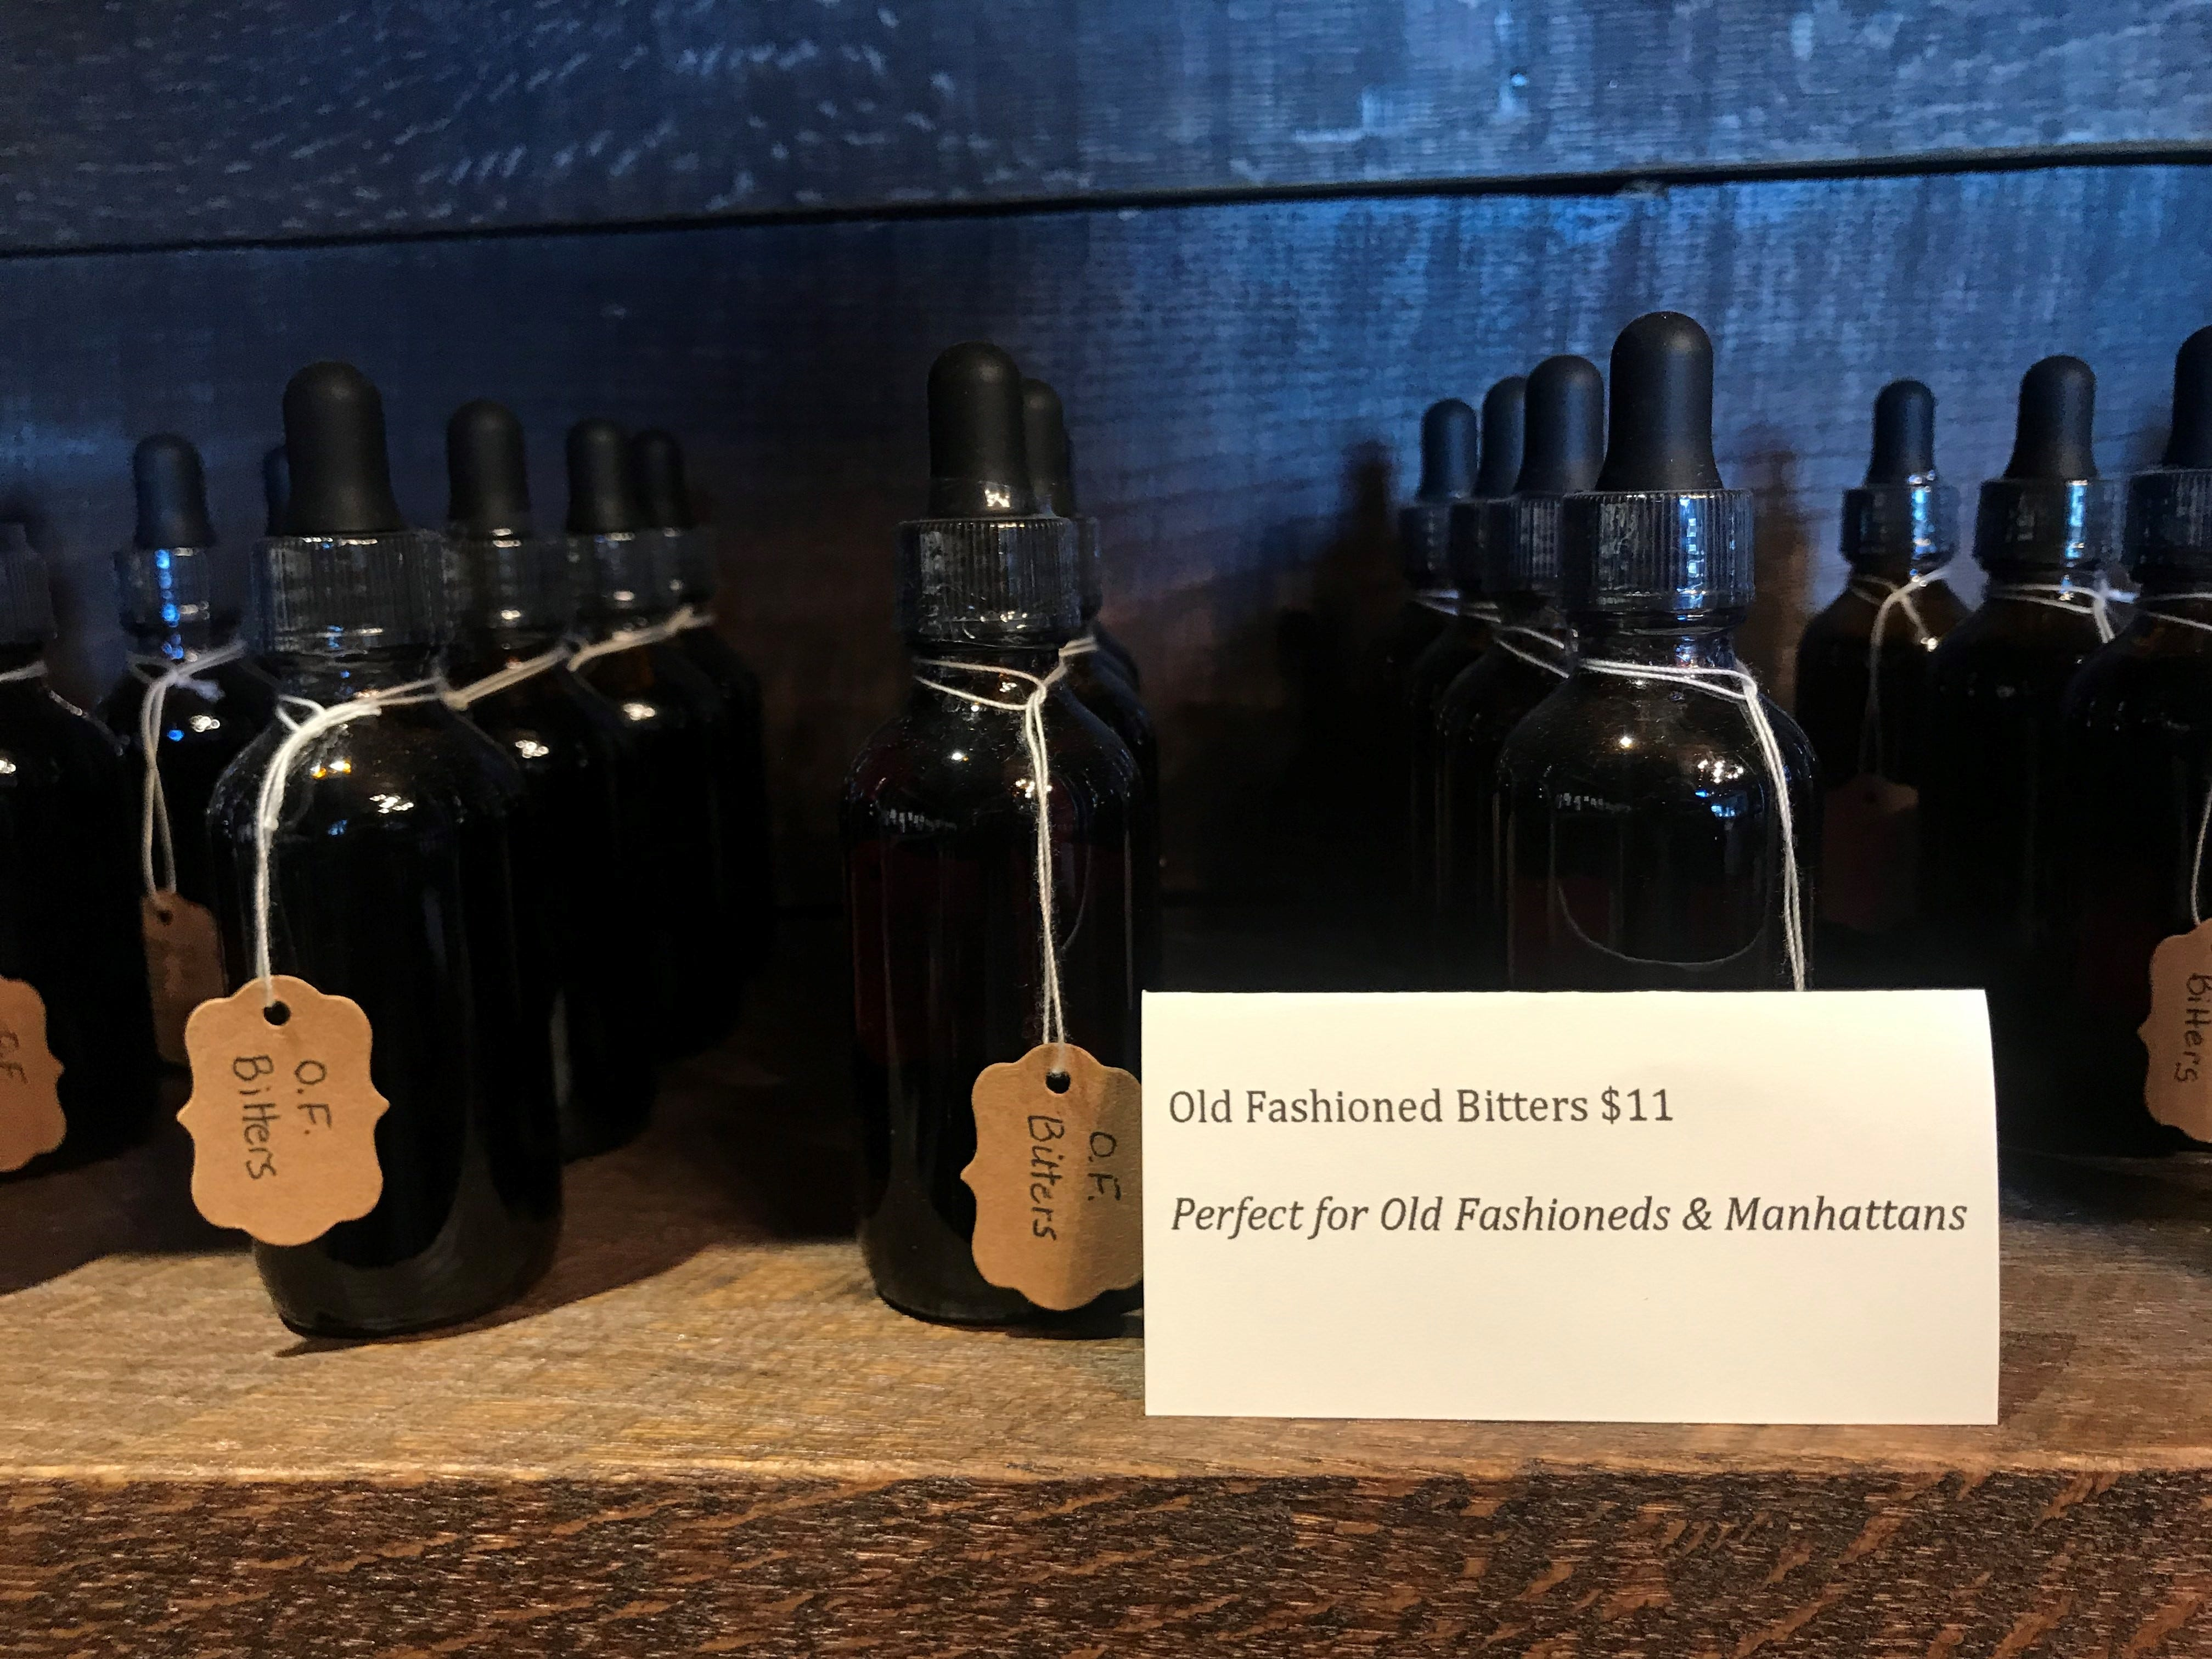 A for-sale section at Tine & Cellar, where customers can purchase house-made Old-Fashioned bitters and other local goods.